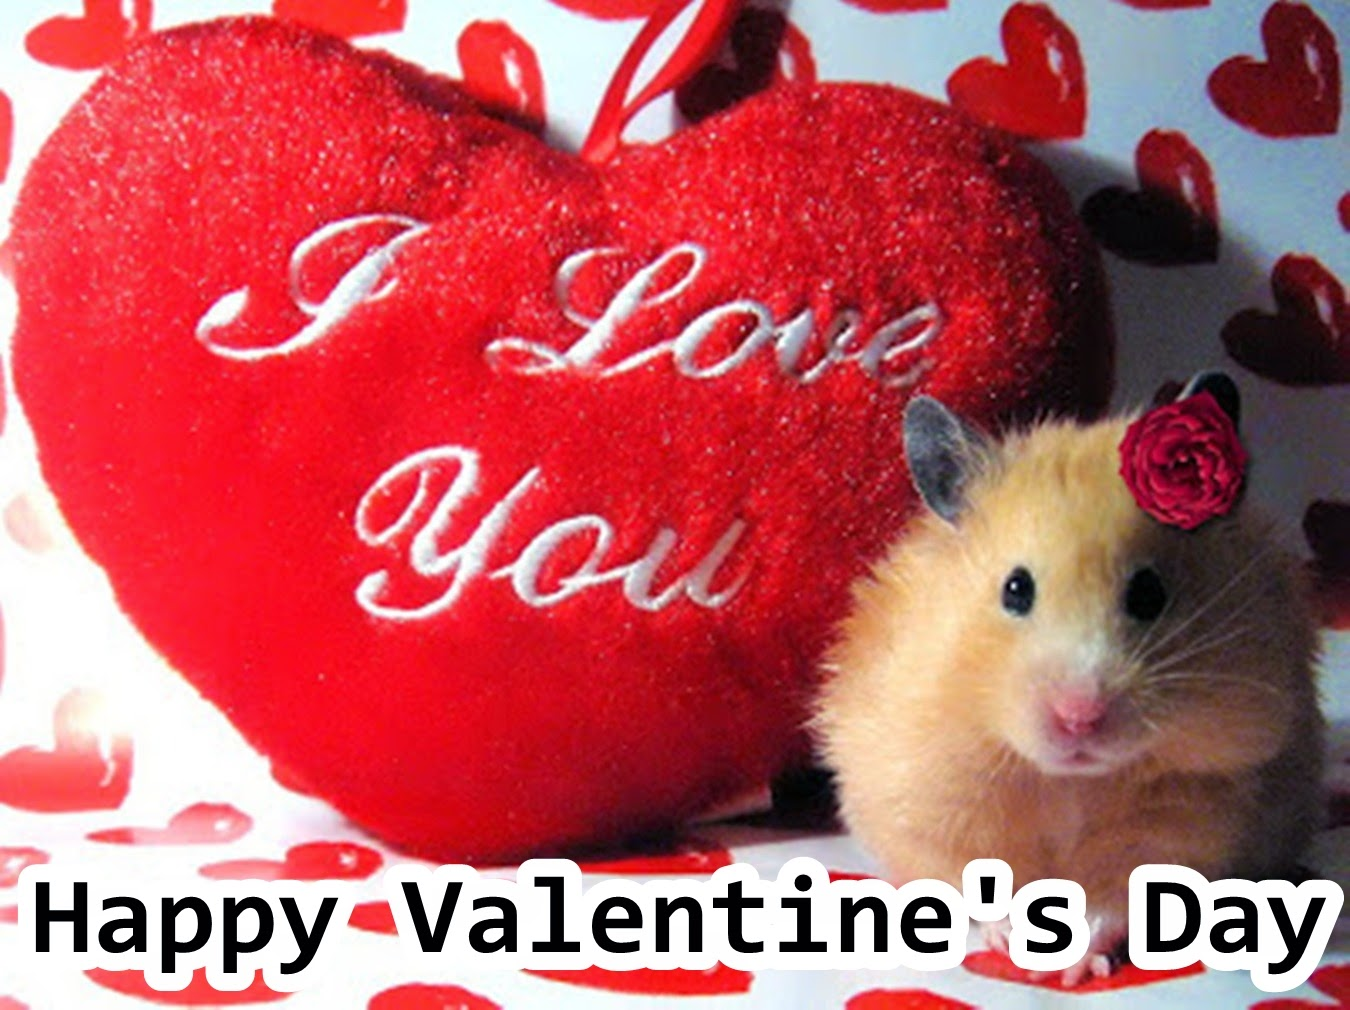 i love you heart valentine day wallpapers.jpg